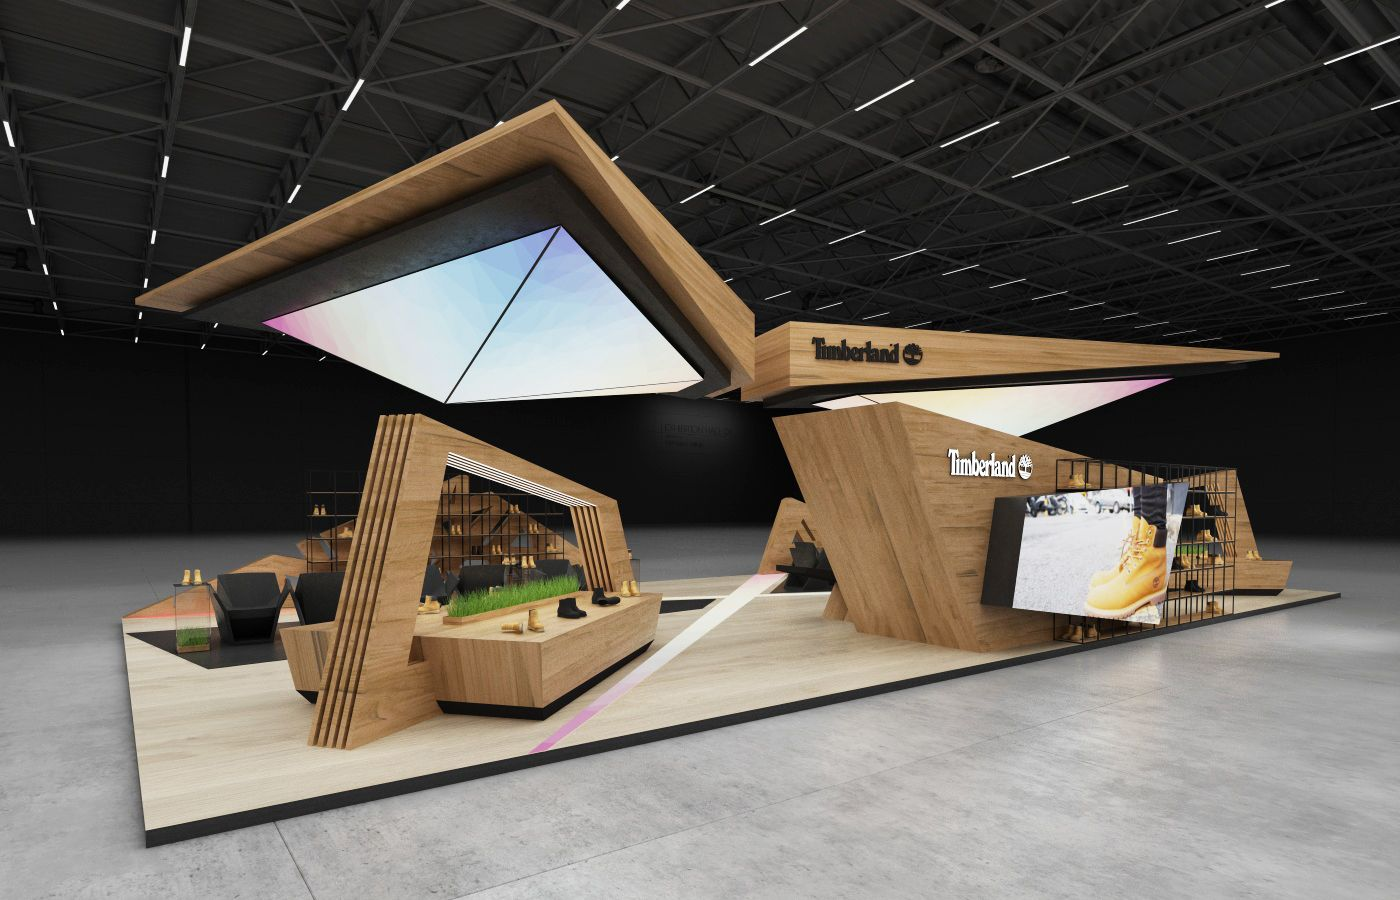 Stands In Expo : Design concept of exhibition stand for timberland sq